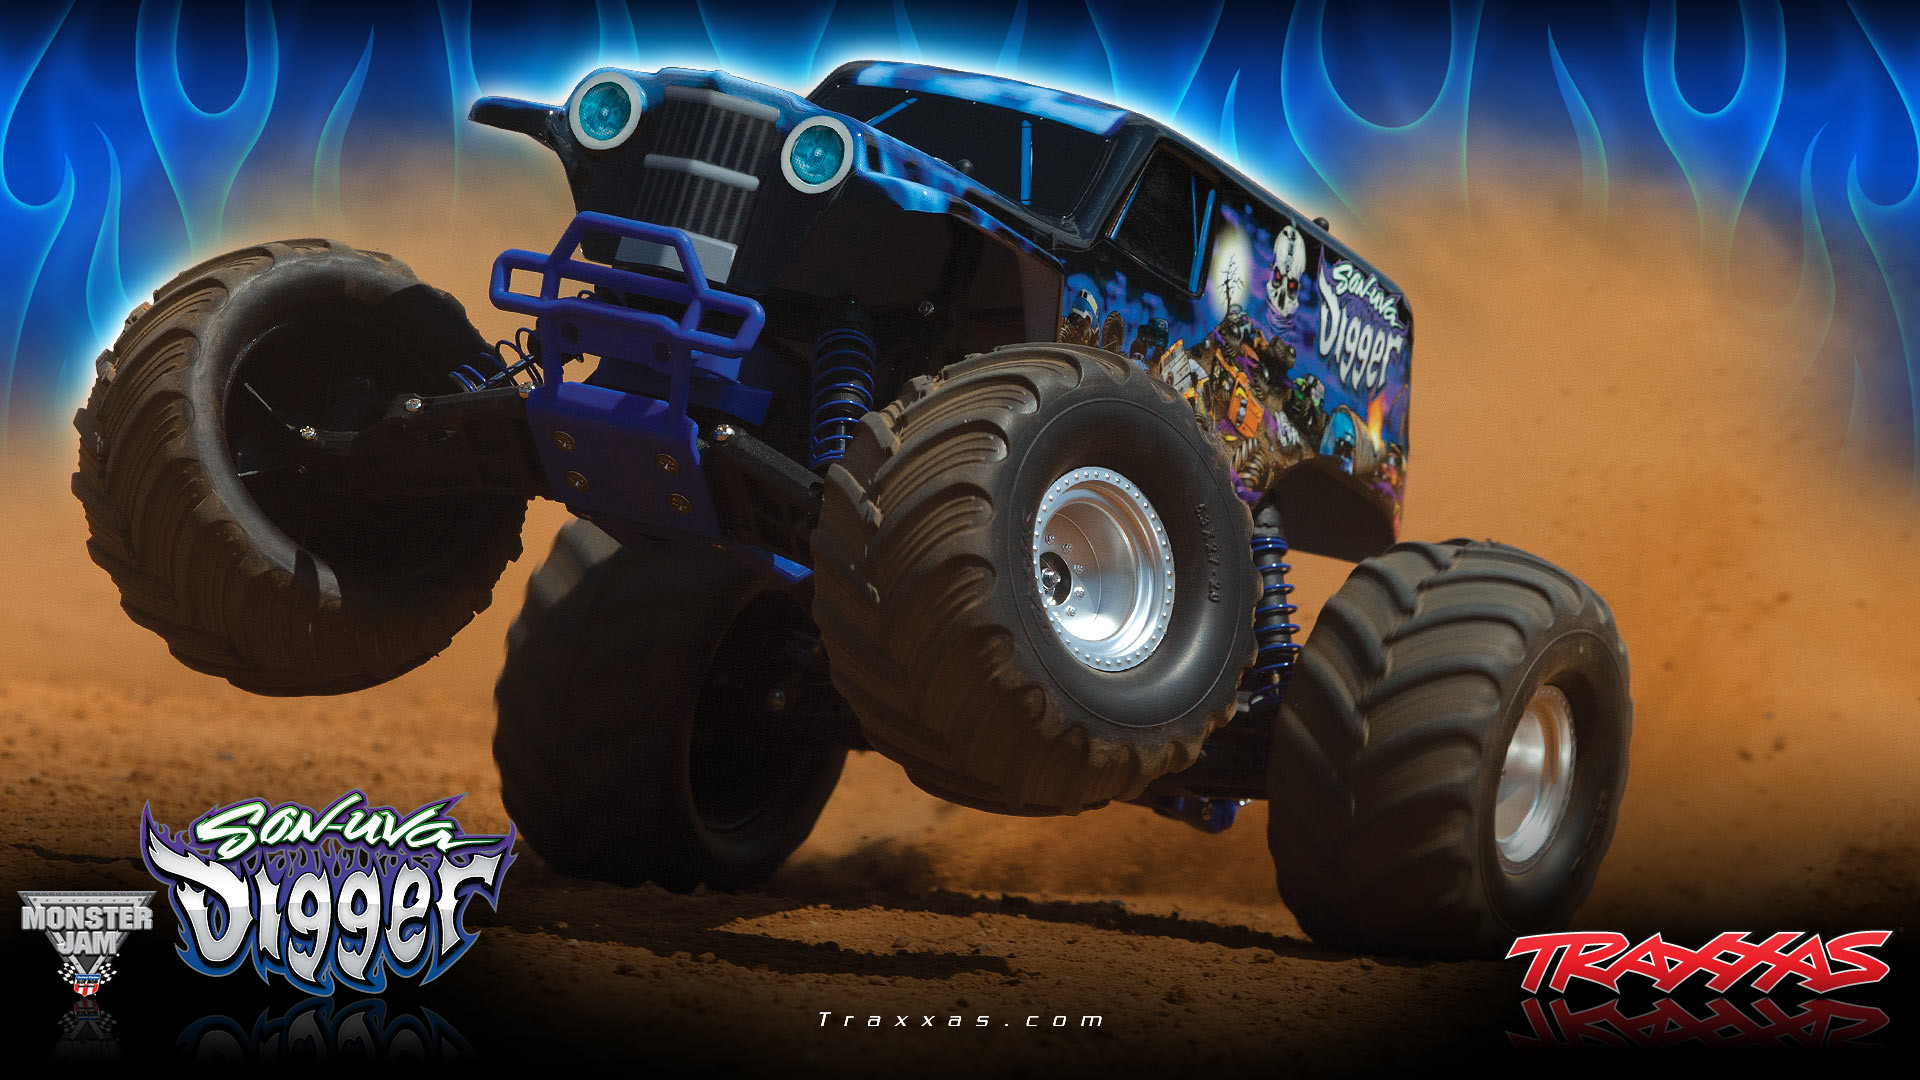 1920x1080 Traxxas Captains Curse Monster Jam | Hobbytown USA Texas - Traxxas RC |  Pinterest | Monster jam, Radio control and Traxxas rc cars